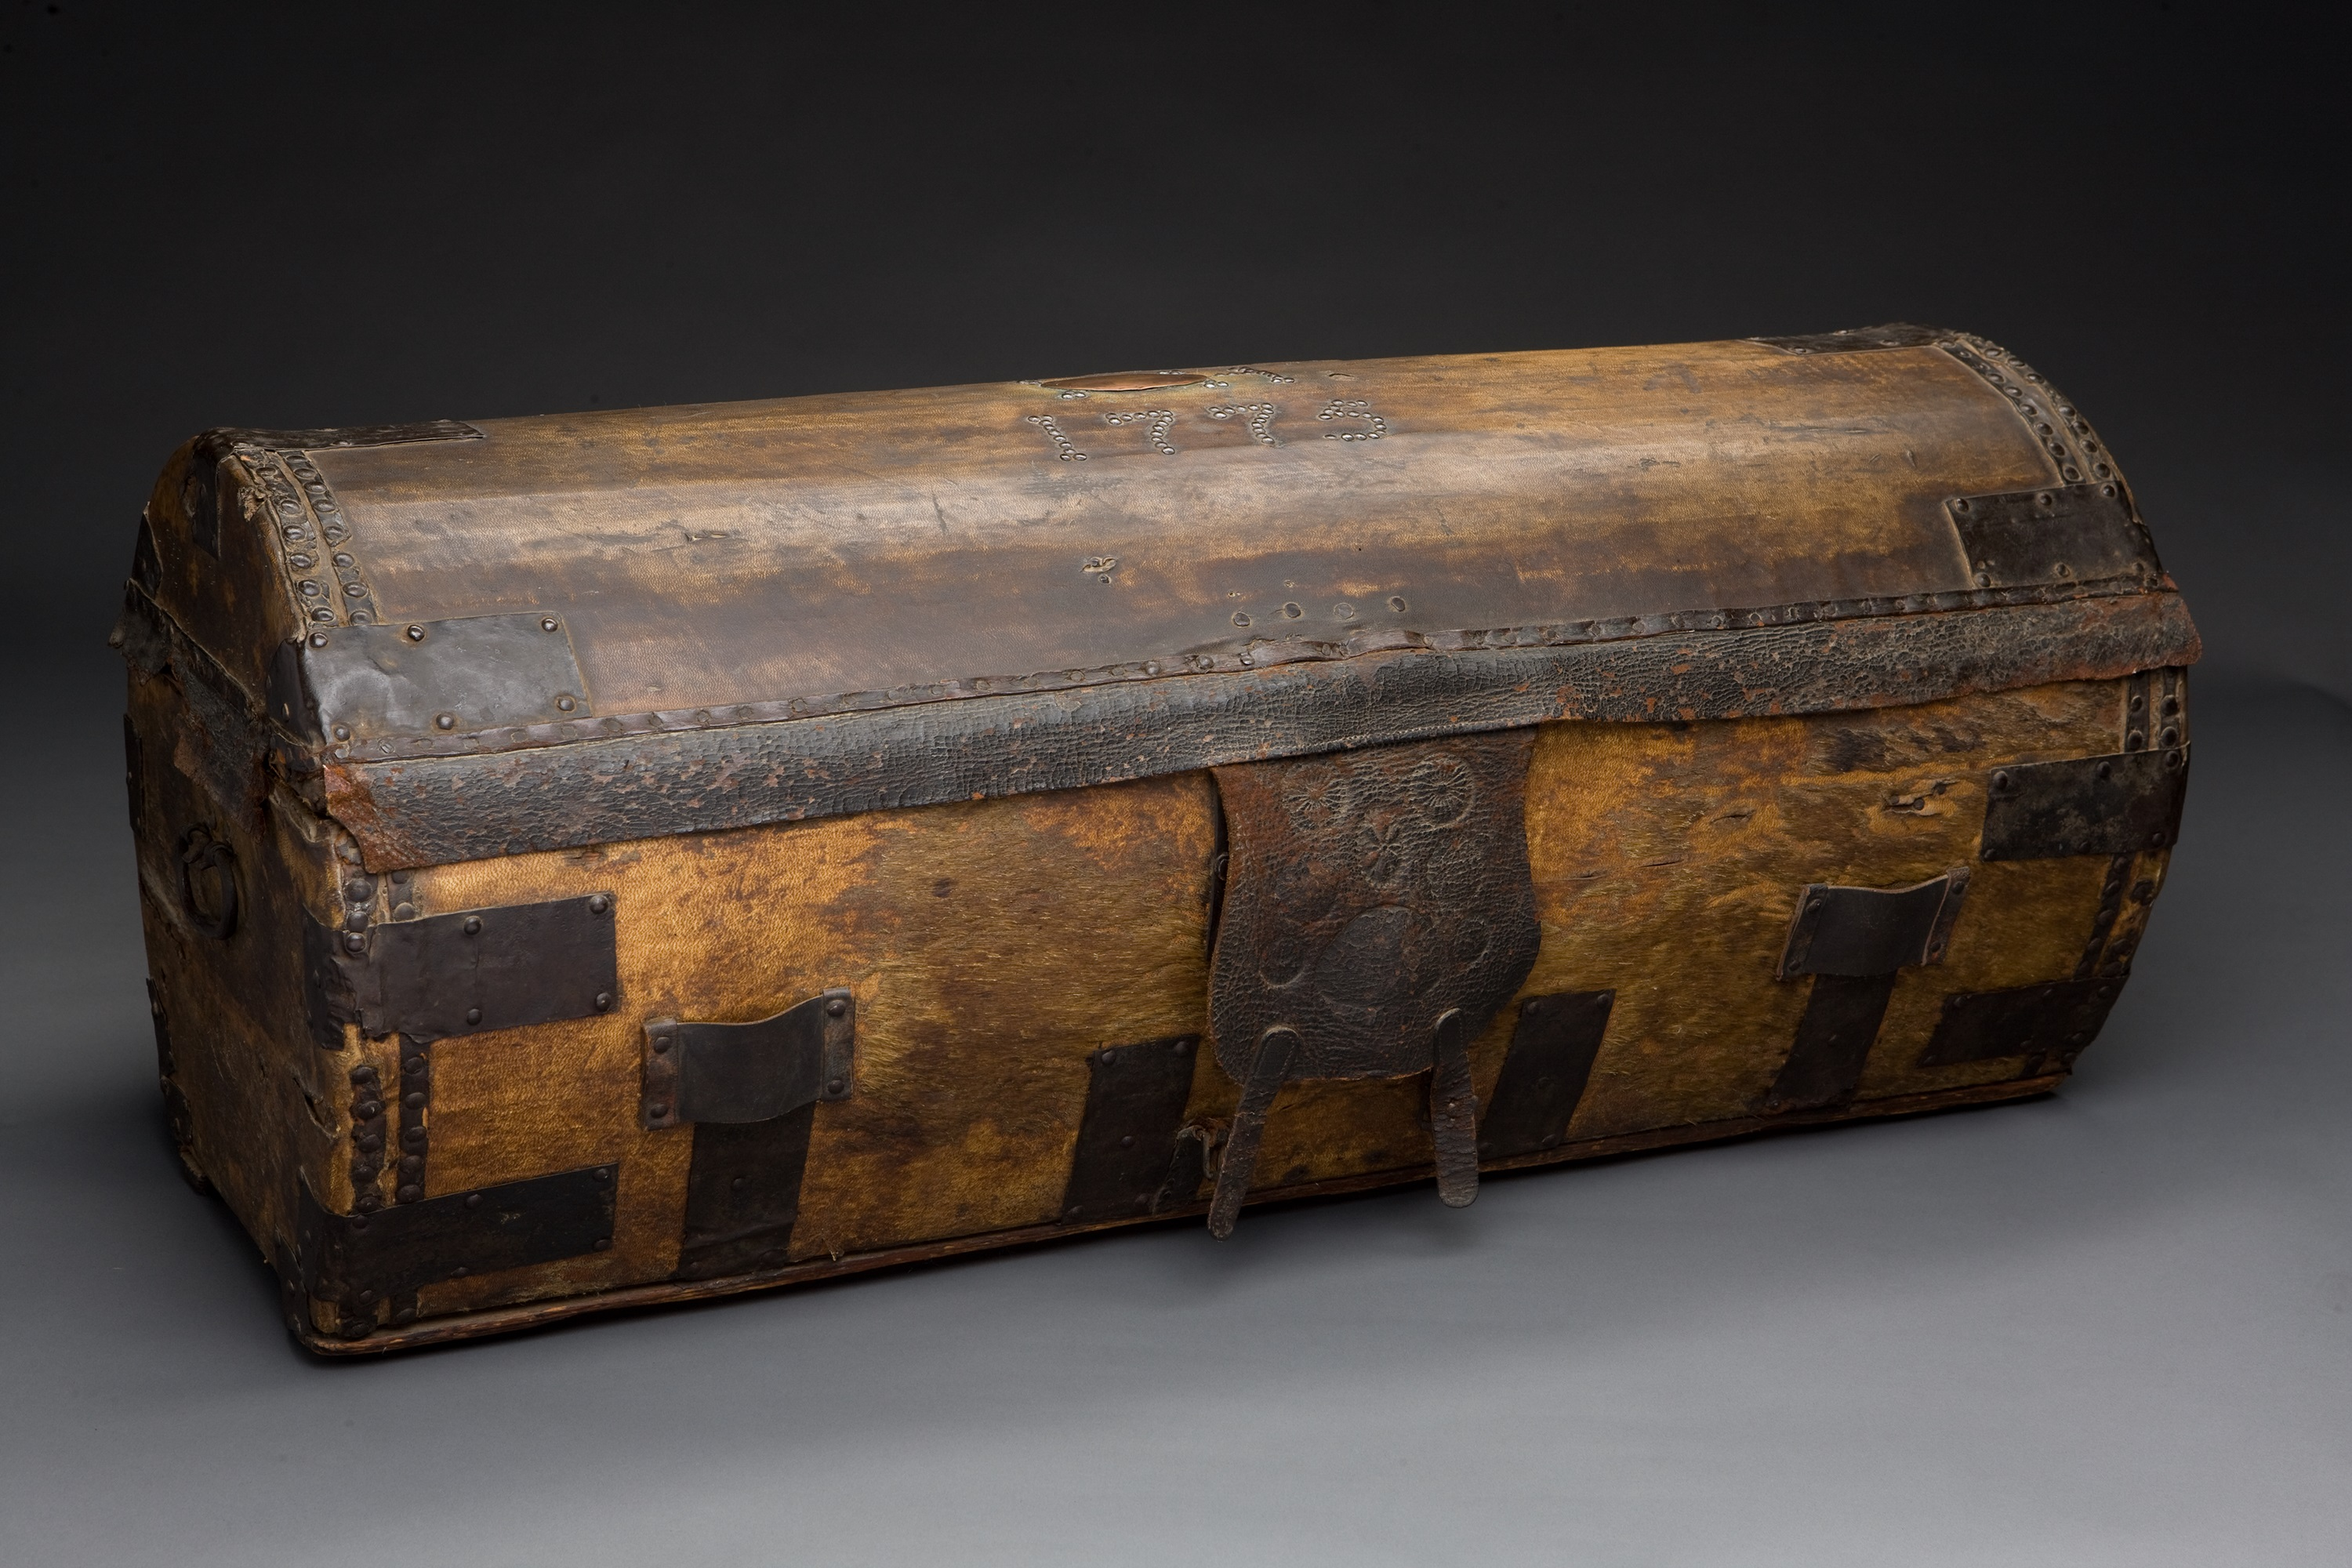 Travelling trunk, purchased in 1776, and used by George Washington to secure his wartime correspondence.